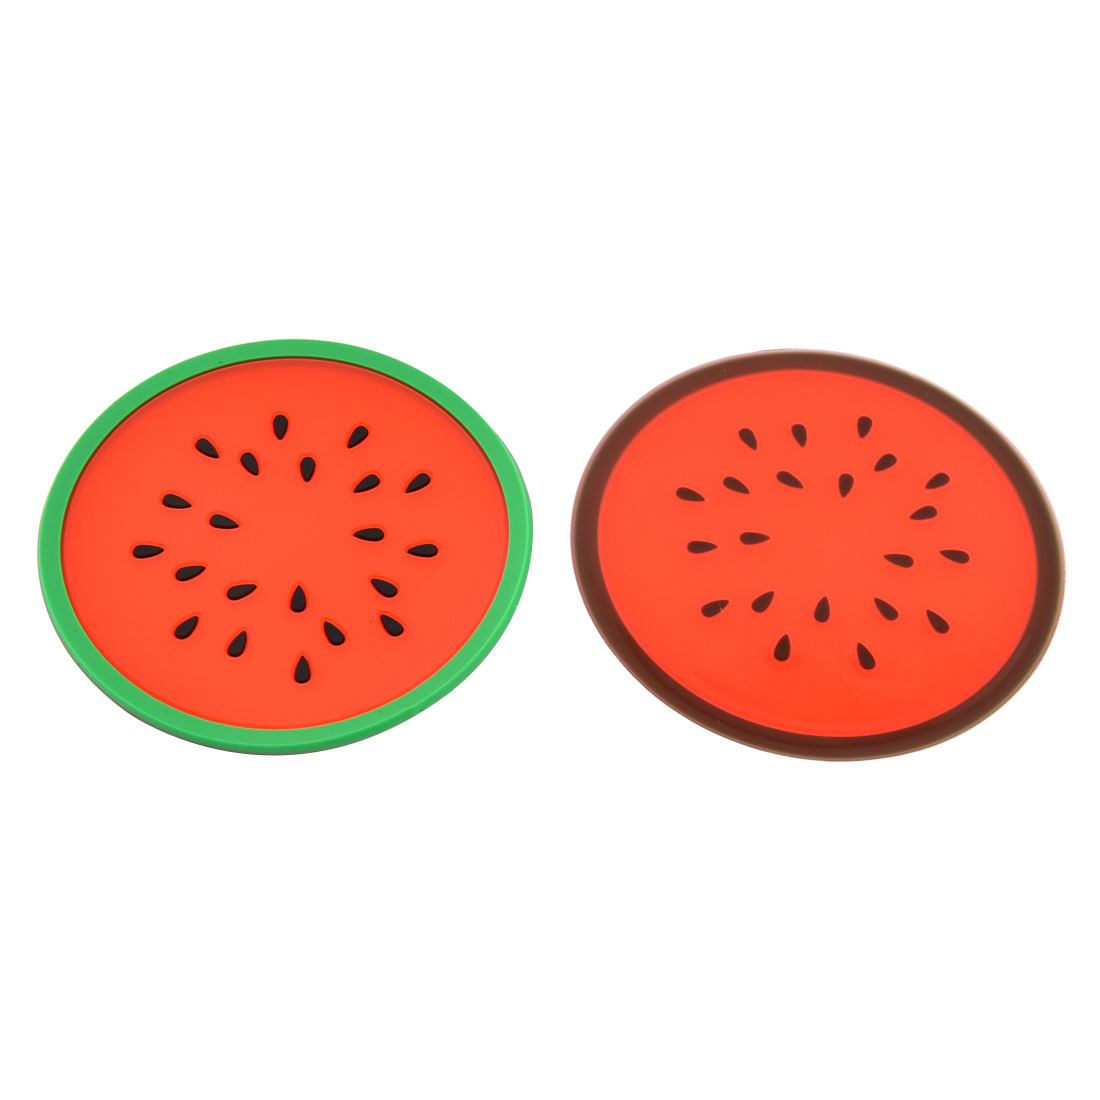 Household Silicone Watermelon Shaped Teapot Bottle Cup Coasters Mat Red Green 2 Pcs